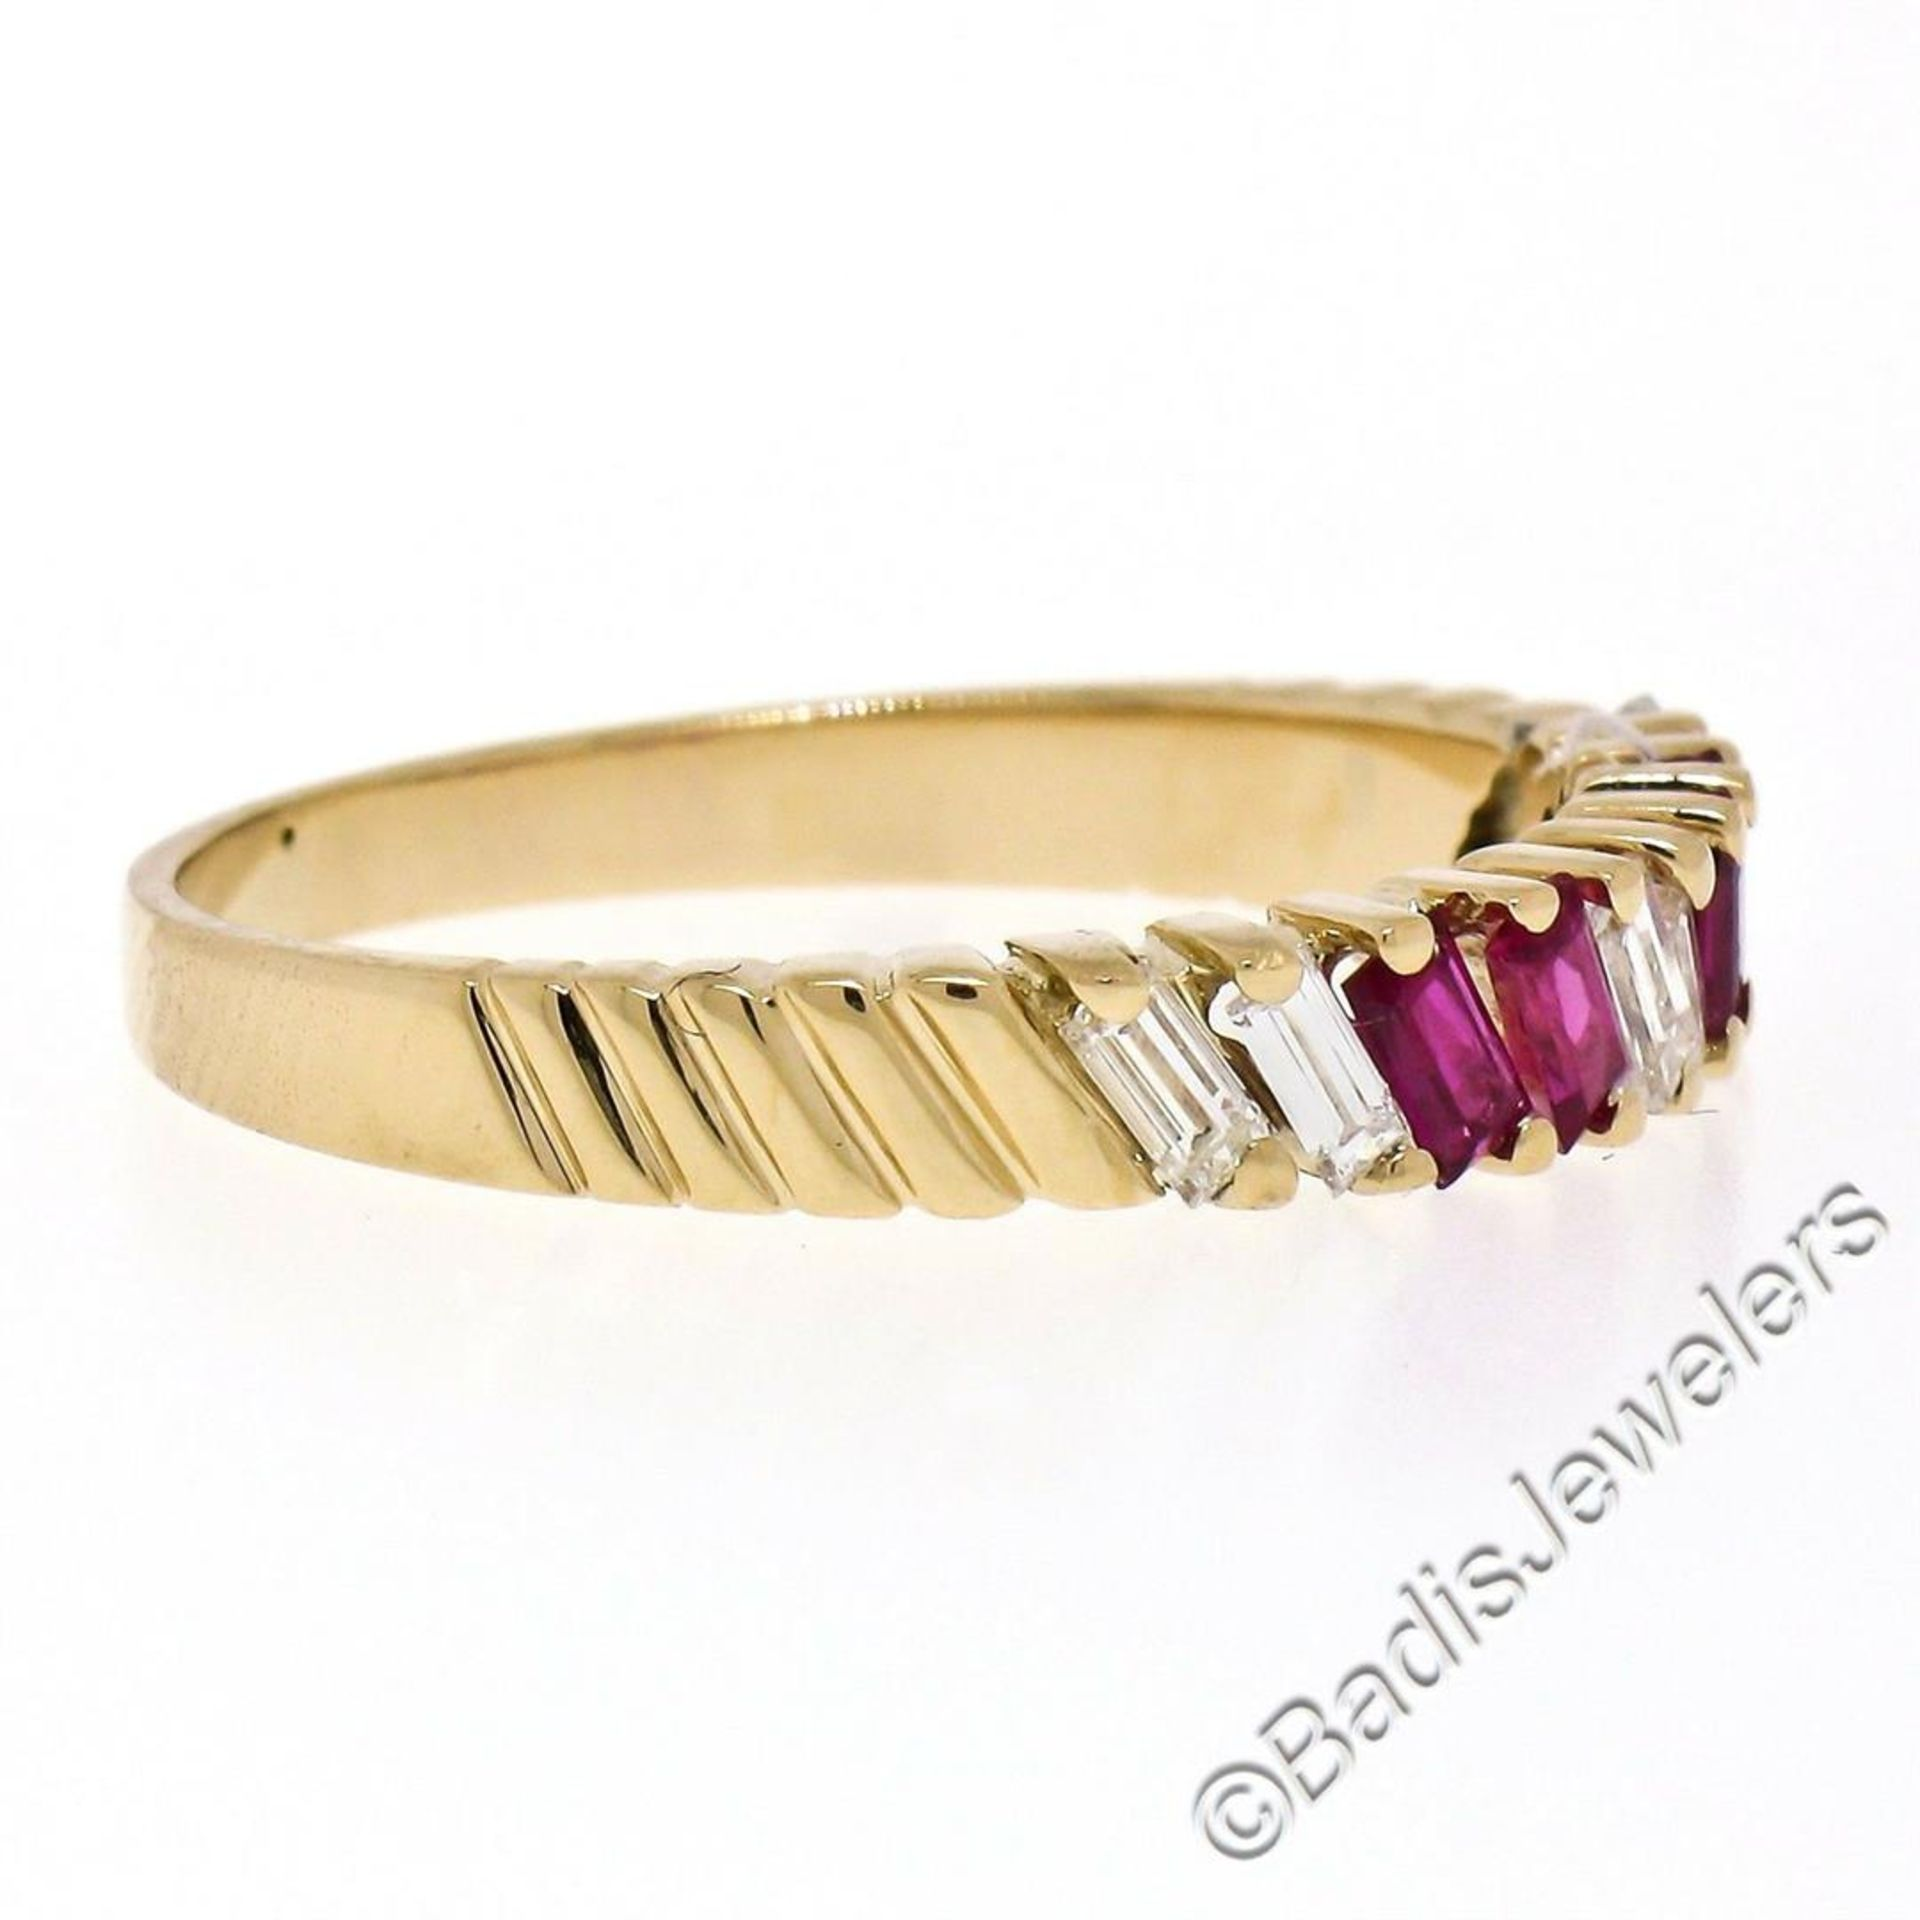 Vintage 18kt Yellow Gold 0.75ctw Baguette Diamond and Ruby Band Ring - Image 3 of 6